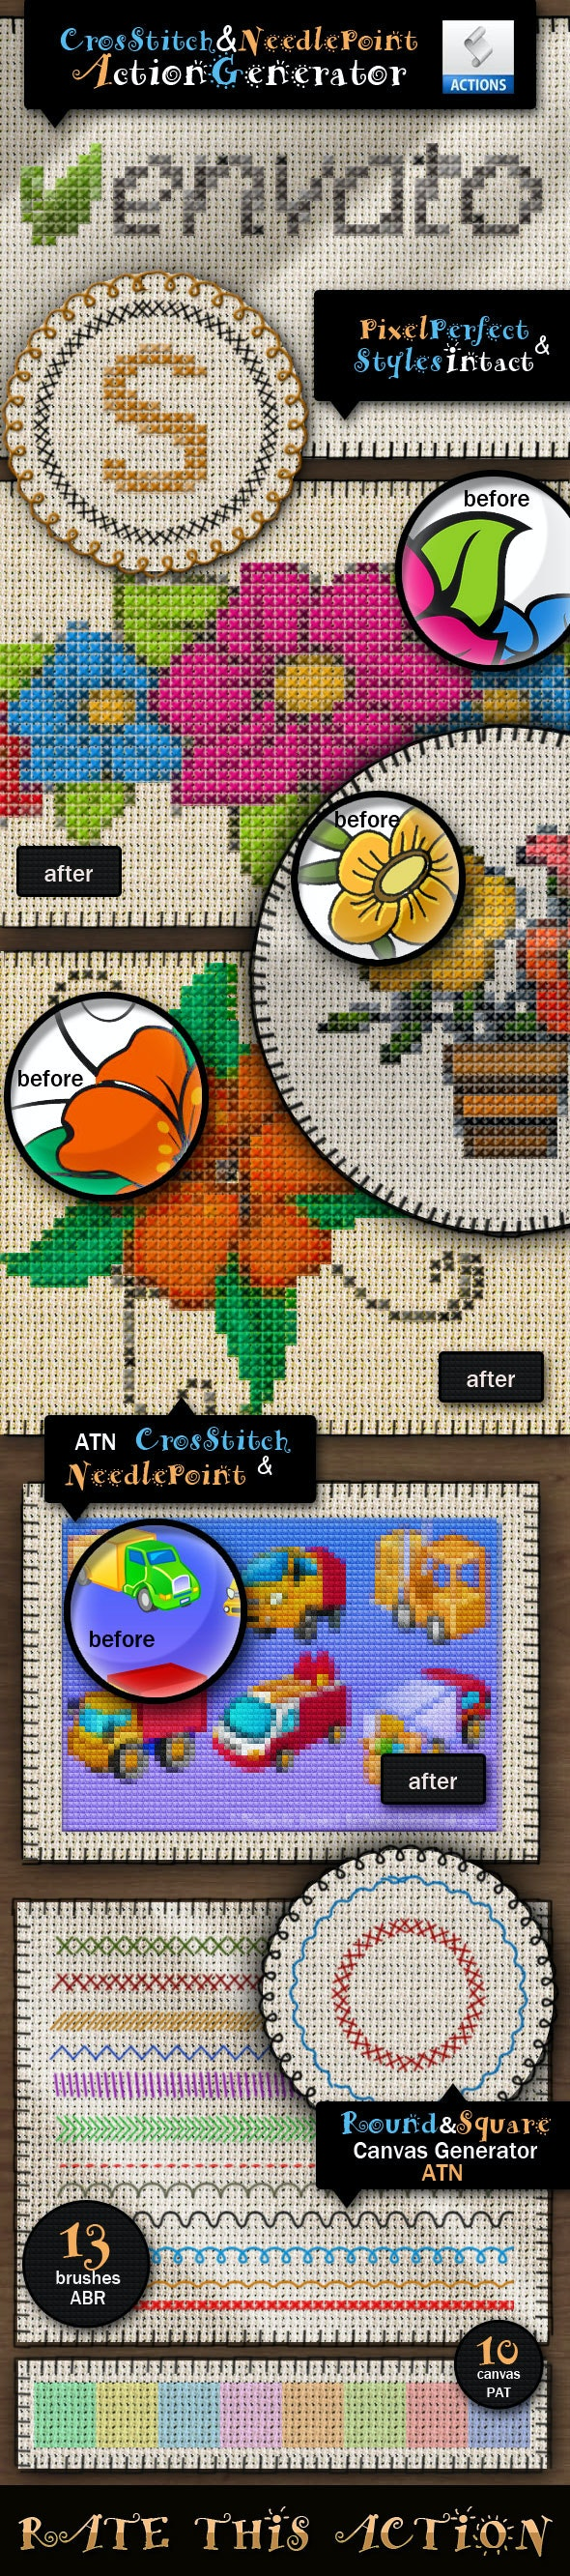 Cross Stitch and Needlepoint Action - Utilities Actions